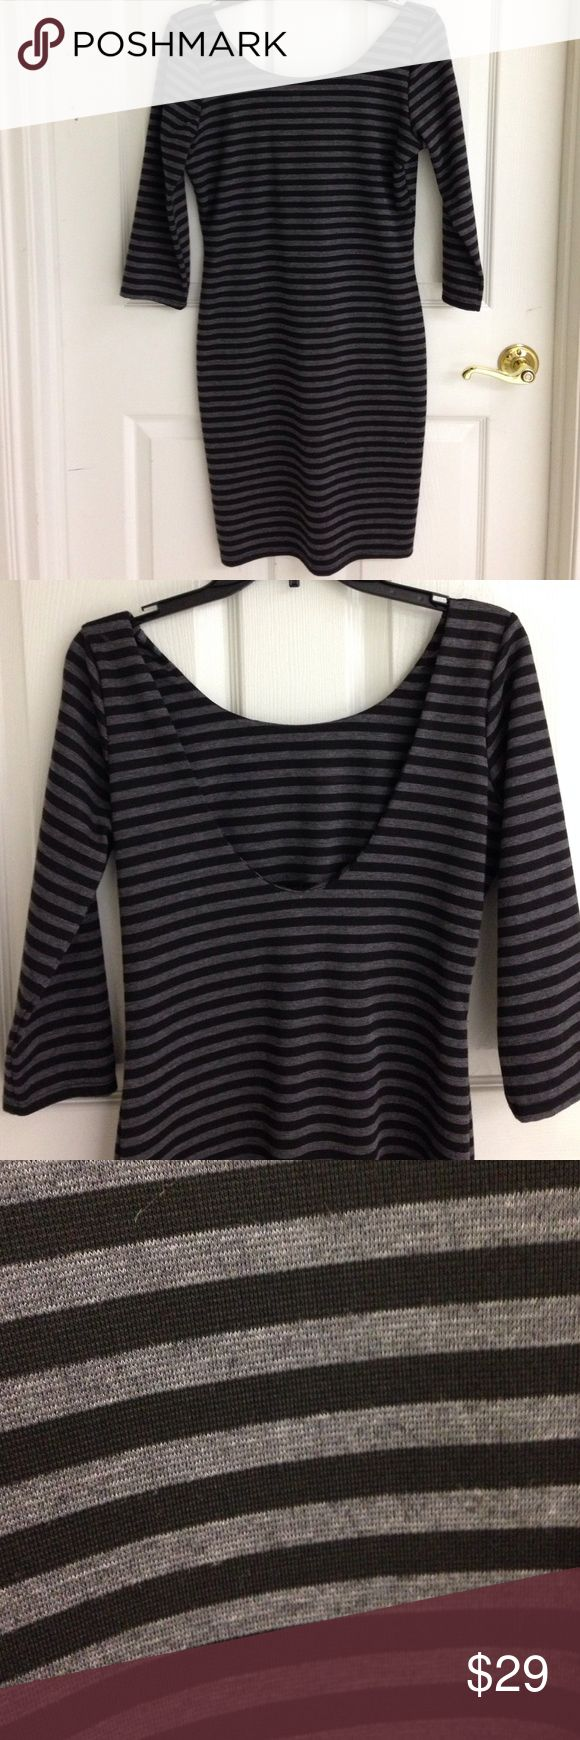 ⏰SALE⏰ Bar III Black & Gray Dress Bar III black and gray striped dress with a low back. 3/4 sleeves. In excellent condition! Bar III Dresses